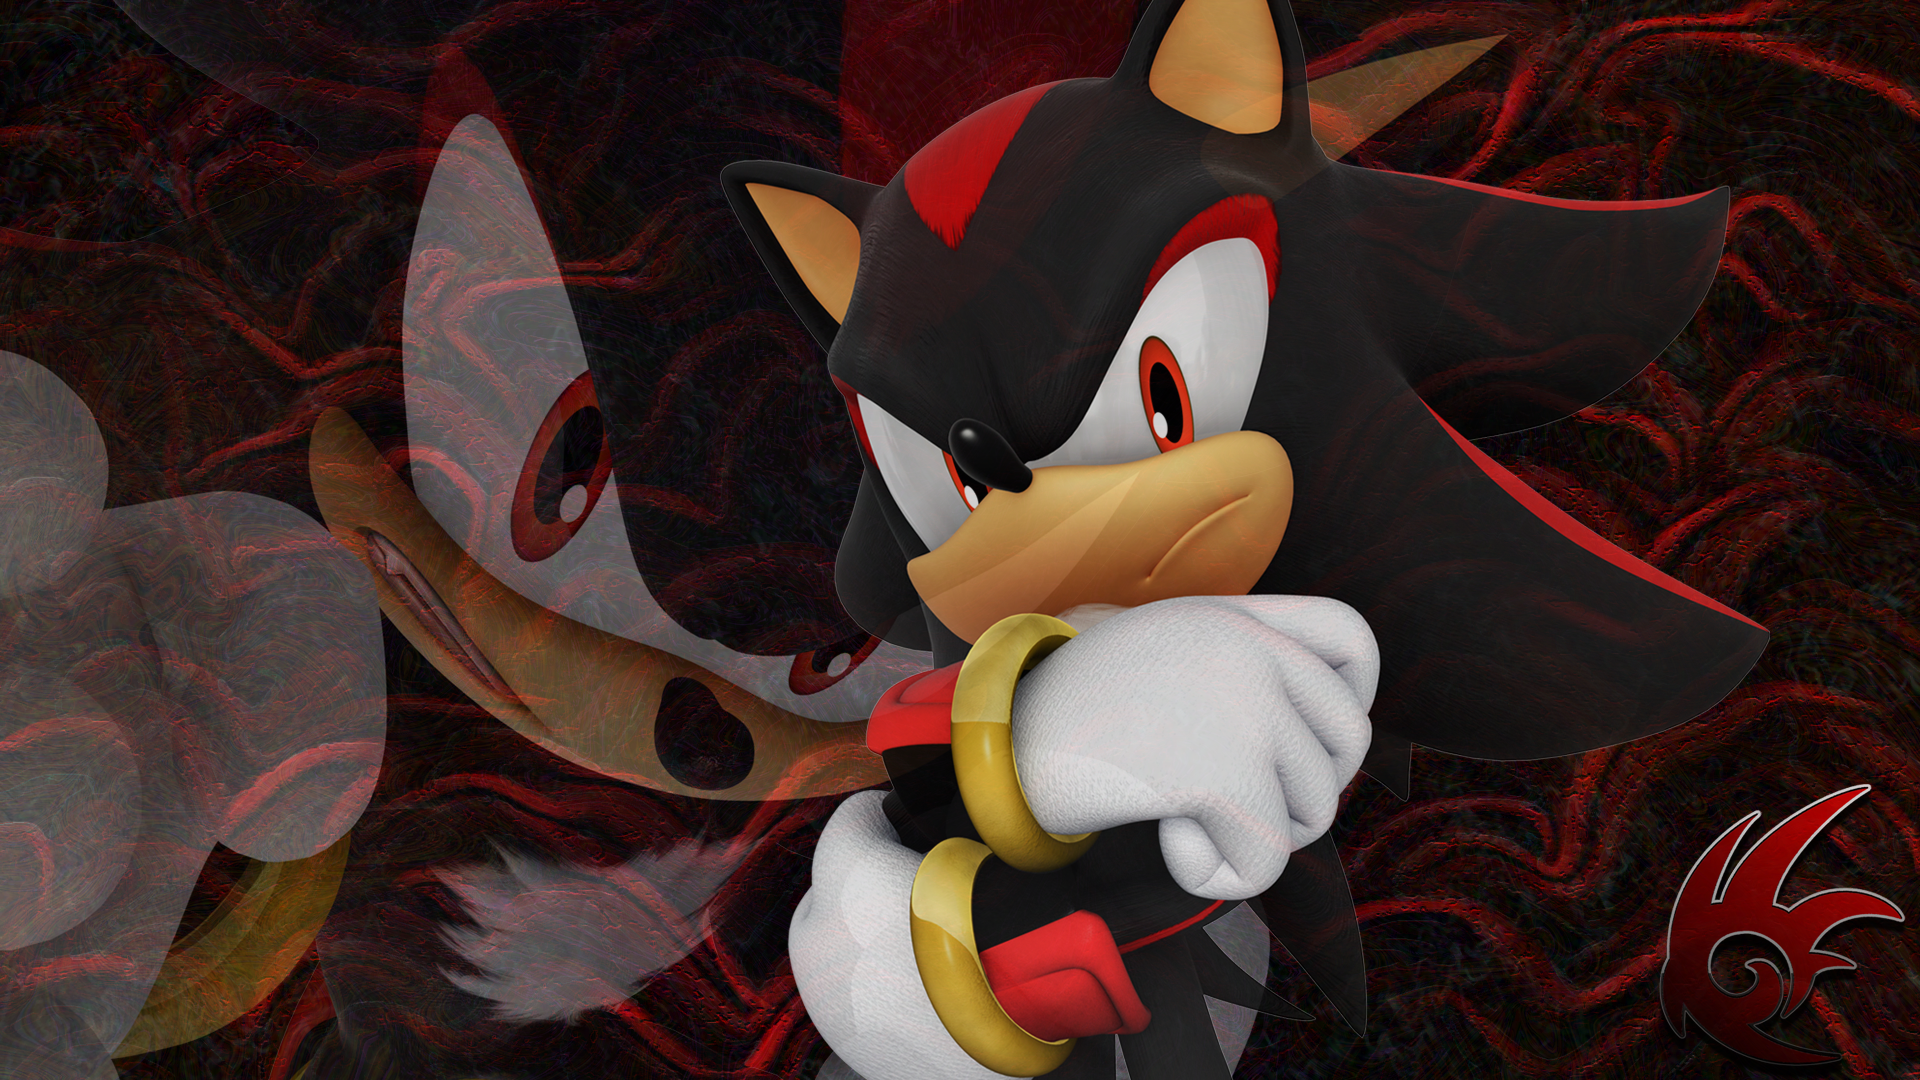 Shadow The Hedgehog Desktop Wallpaper By Passionworks On Deviantart